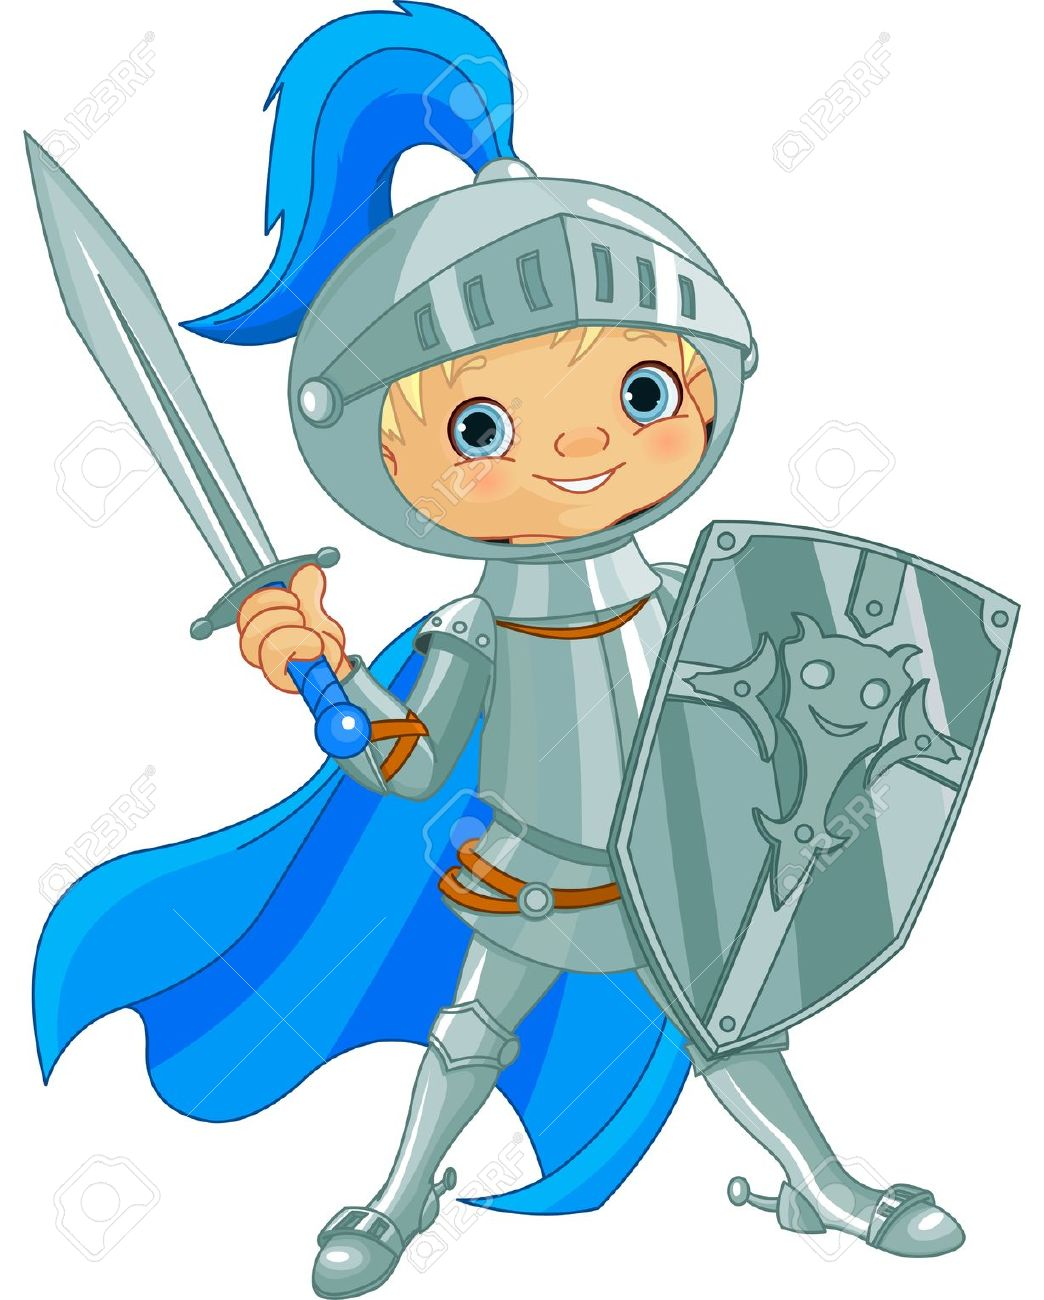 Knight clipart #11, Download drawings